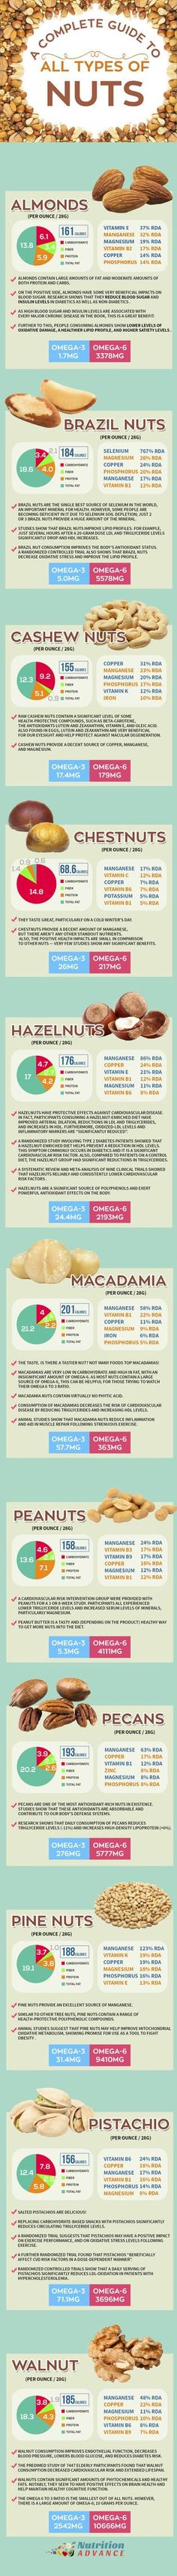 Nutrition Data For Every Type of Nut! How many carbs? And what is the omega 3 to omega 6 ratio? And what are the major vitamins and minerals that each nut provides? Here is all that data and more for the following nuts: almonds, brazil nuts, cashew nuts, chestnuts, hazelnuts, macadamia, peanuts, pecans, pine nuts, pistachios, walnuts. This guide is great for anyone watching their carbohydrate levels, such as people doing low carb and keto diets. Based on the ultimate guide to nuts at…